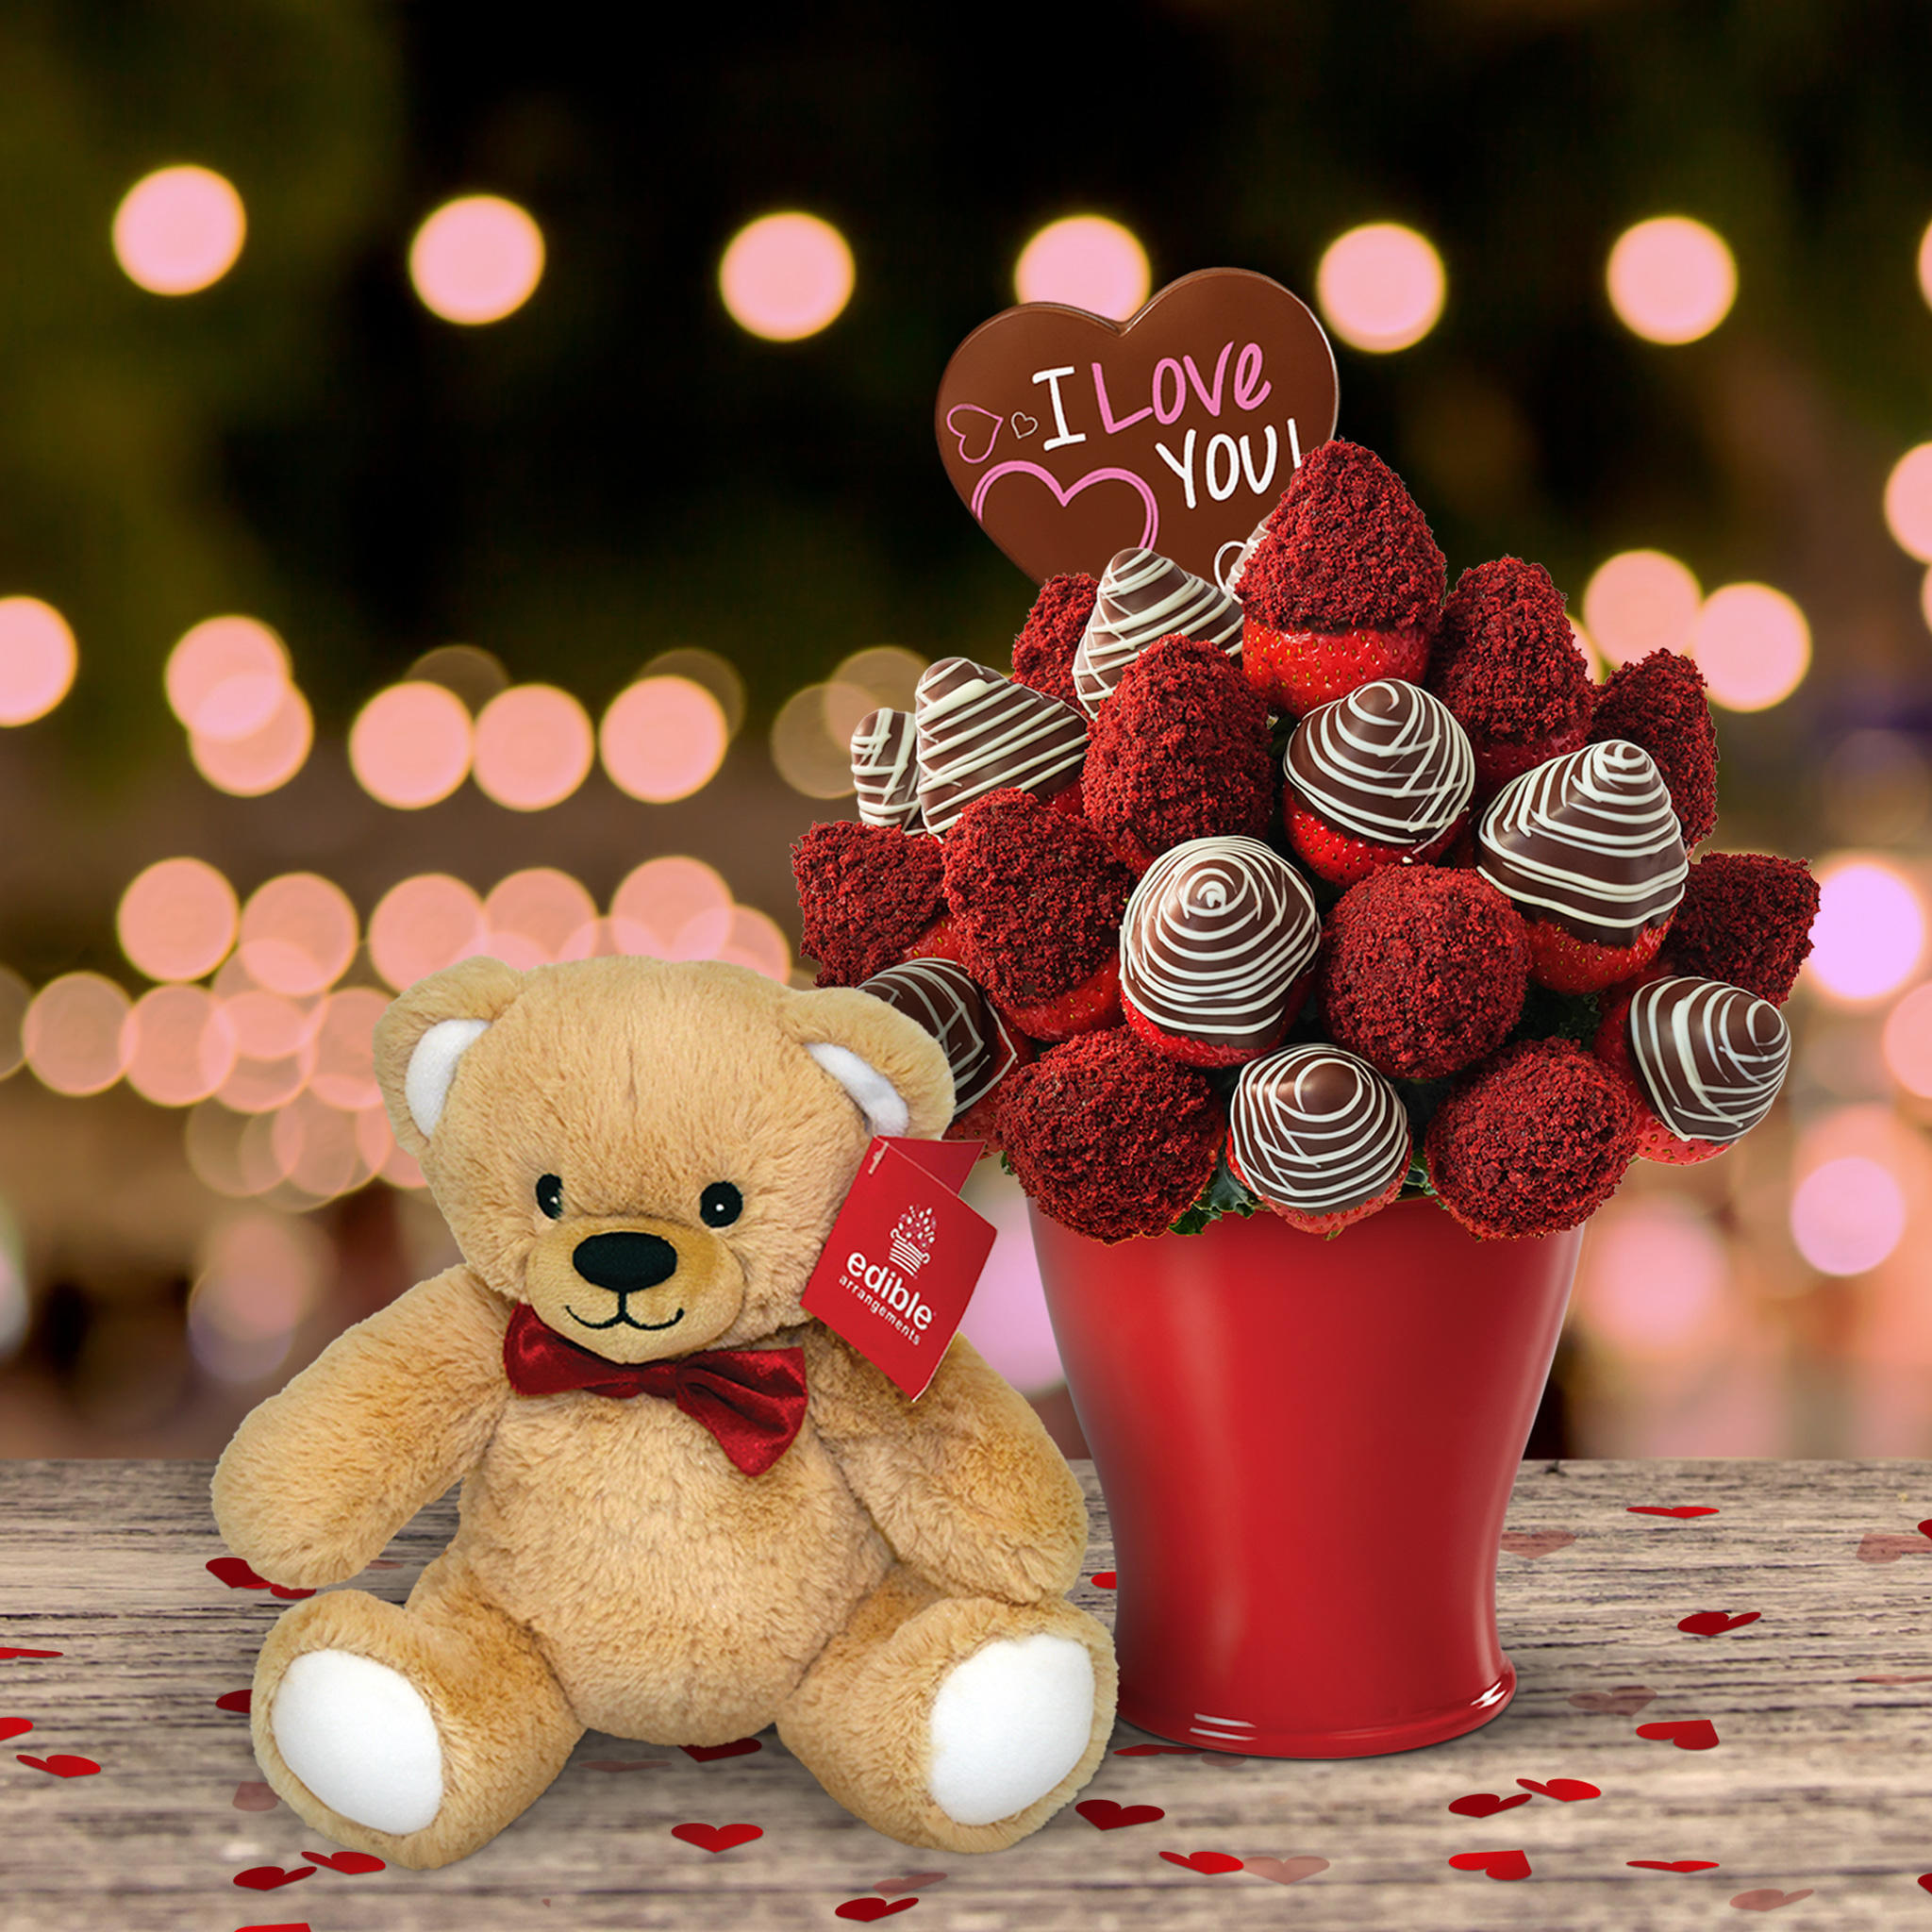 Valentine's Day Gifts Edible Arrangements Hoover (205)987-1700